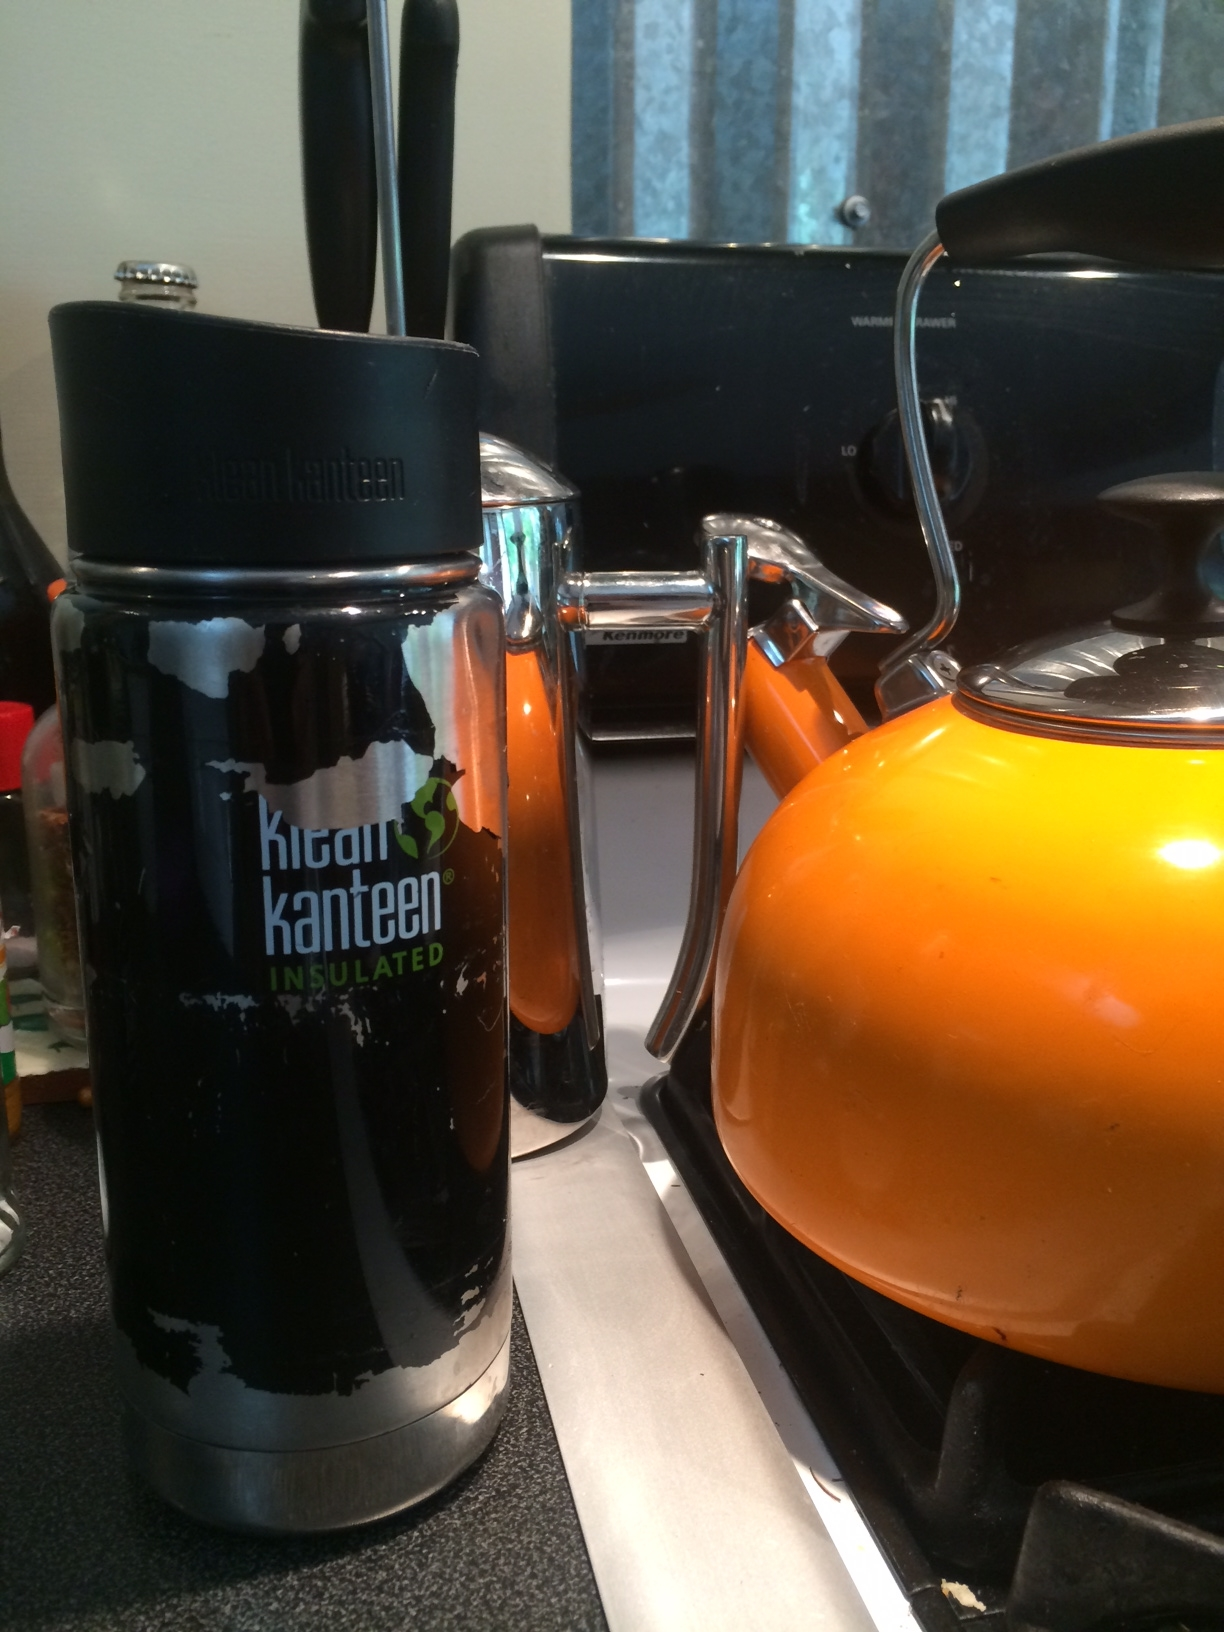 Kleen Kanteen Insulated Metal Water Bottle  Step 2:  Hot or Ice coffee